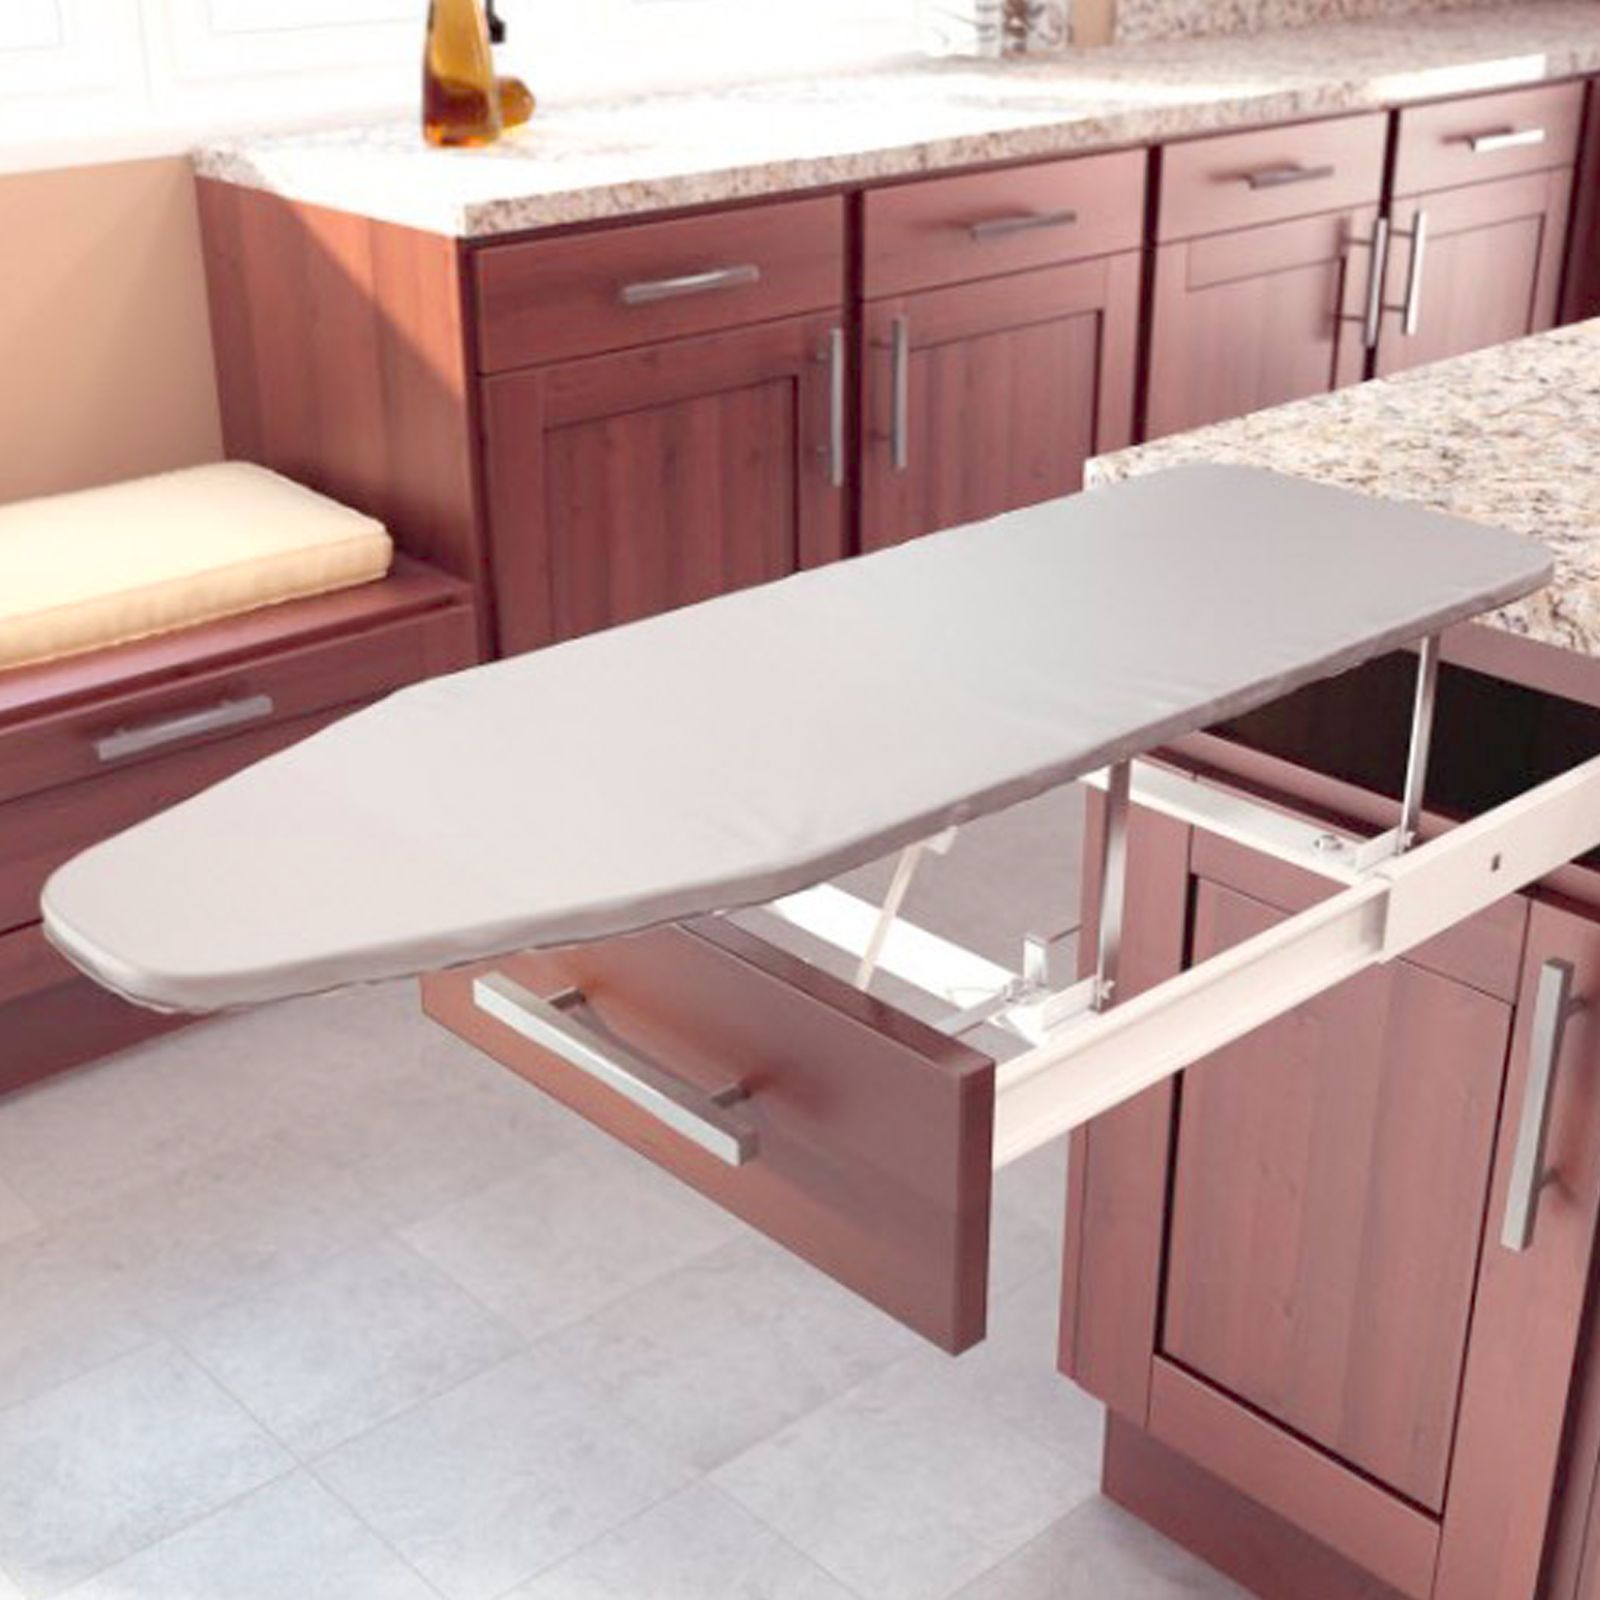 Pull Out Drawer Ironing Board Pull Out Ironing Board Ironing